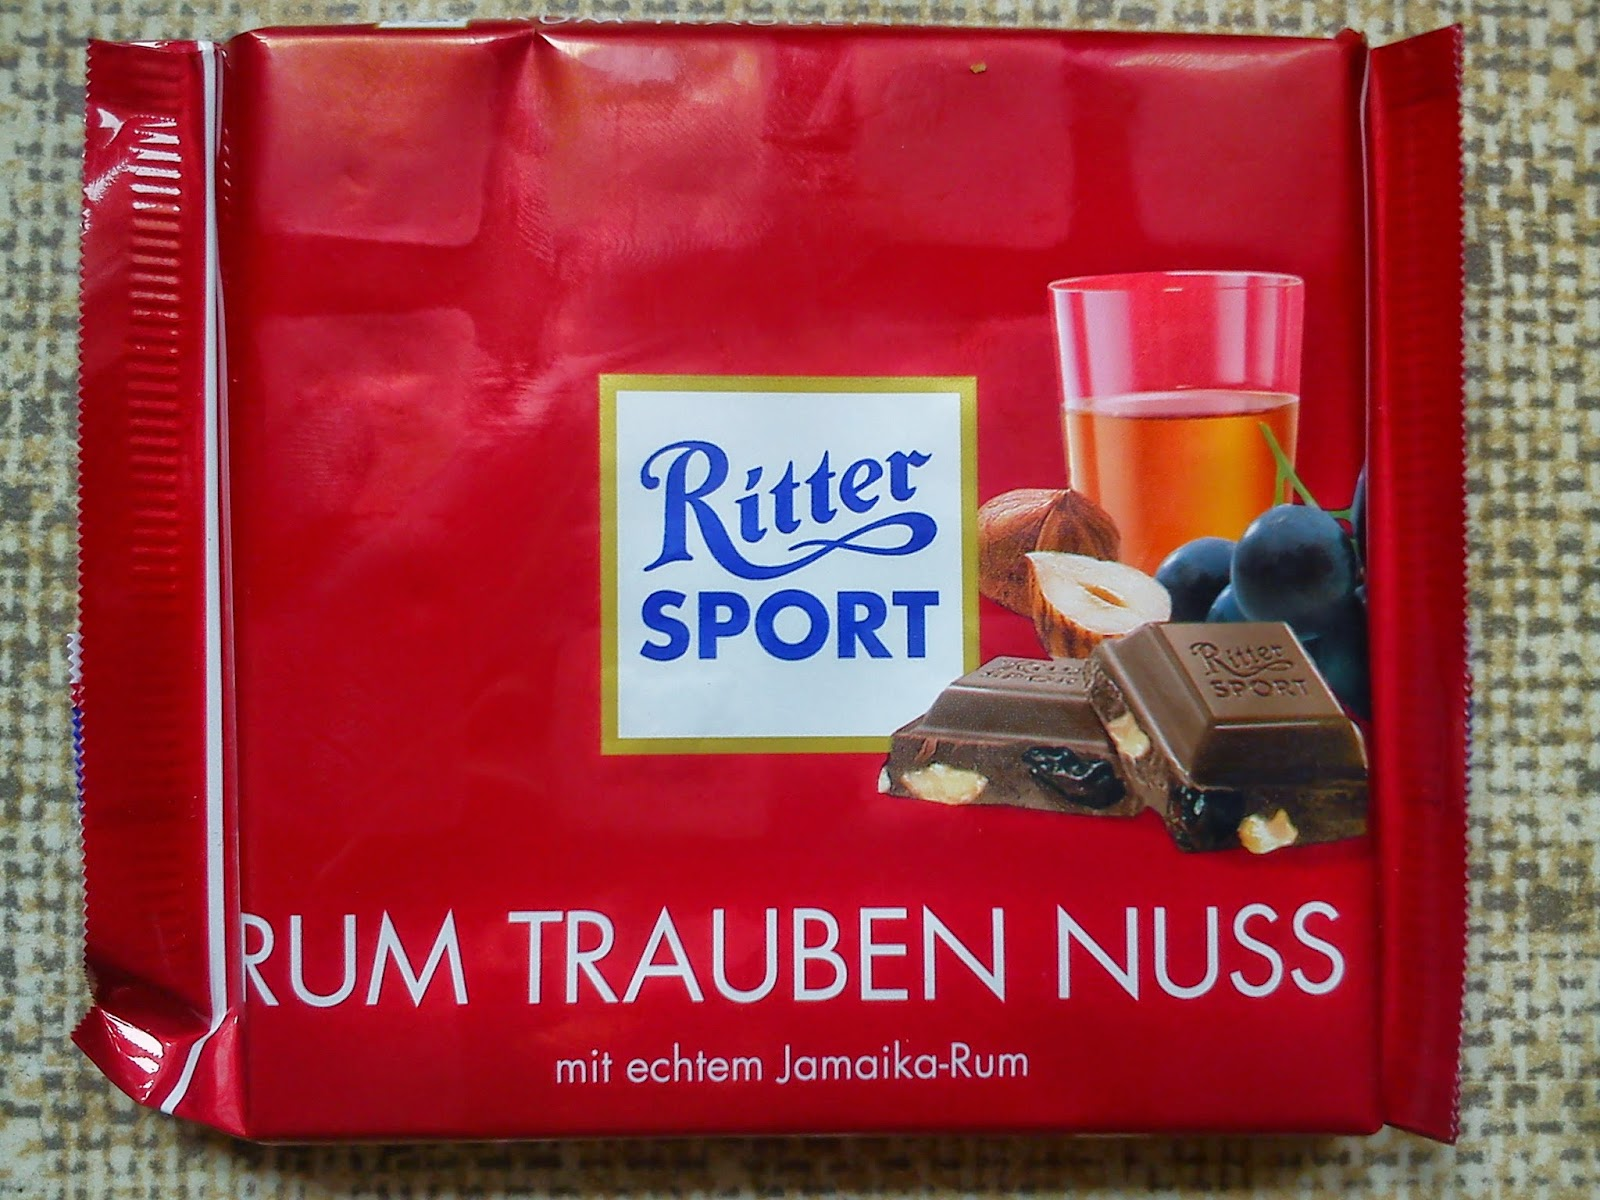 mi o niczka s odyczy ritter sport rum trauben nuss mit. Black Bedroom Furniture Sets. Home Design Ideas